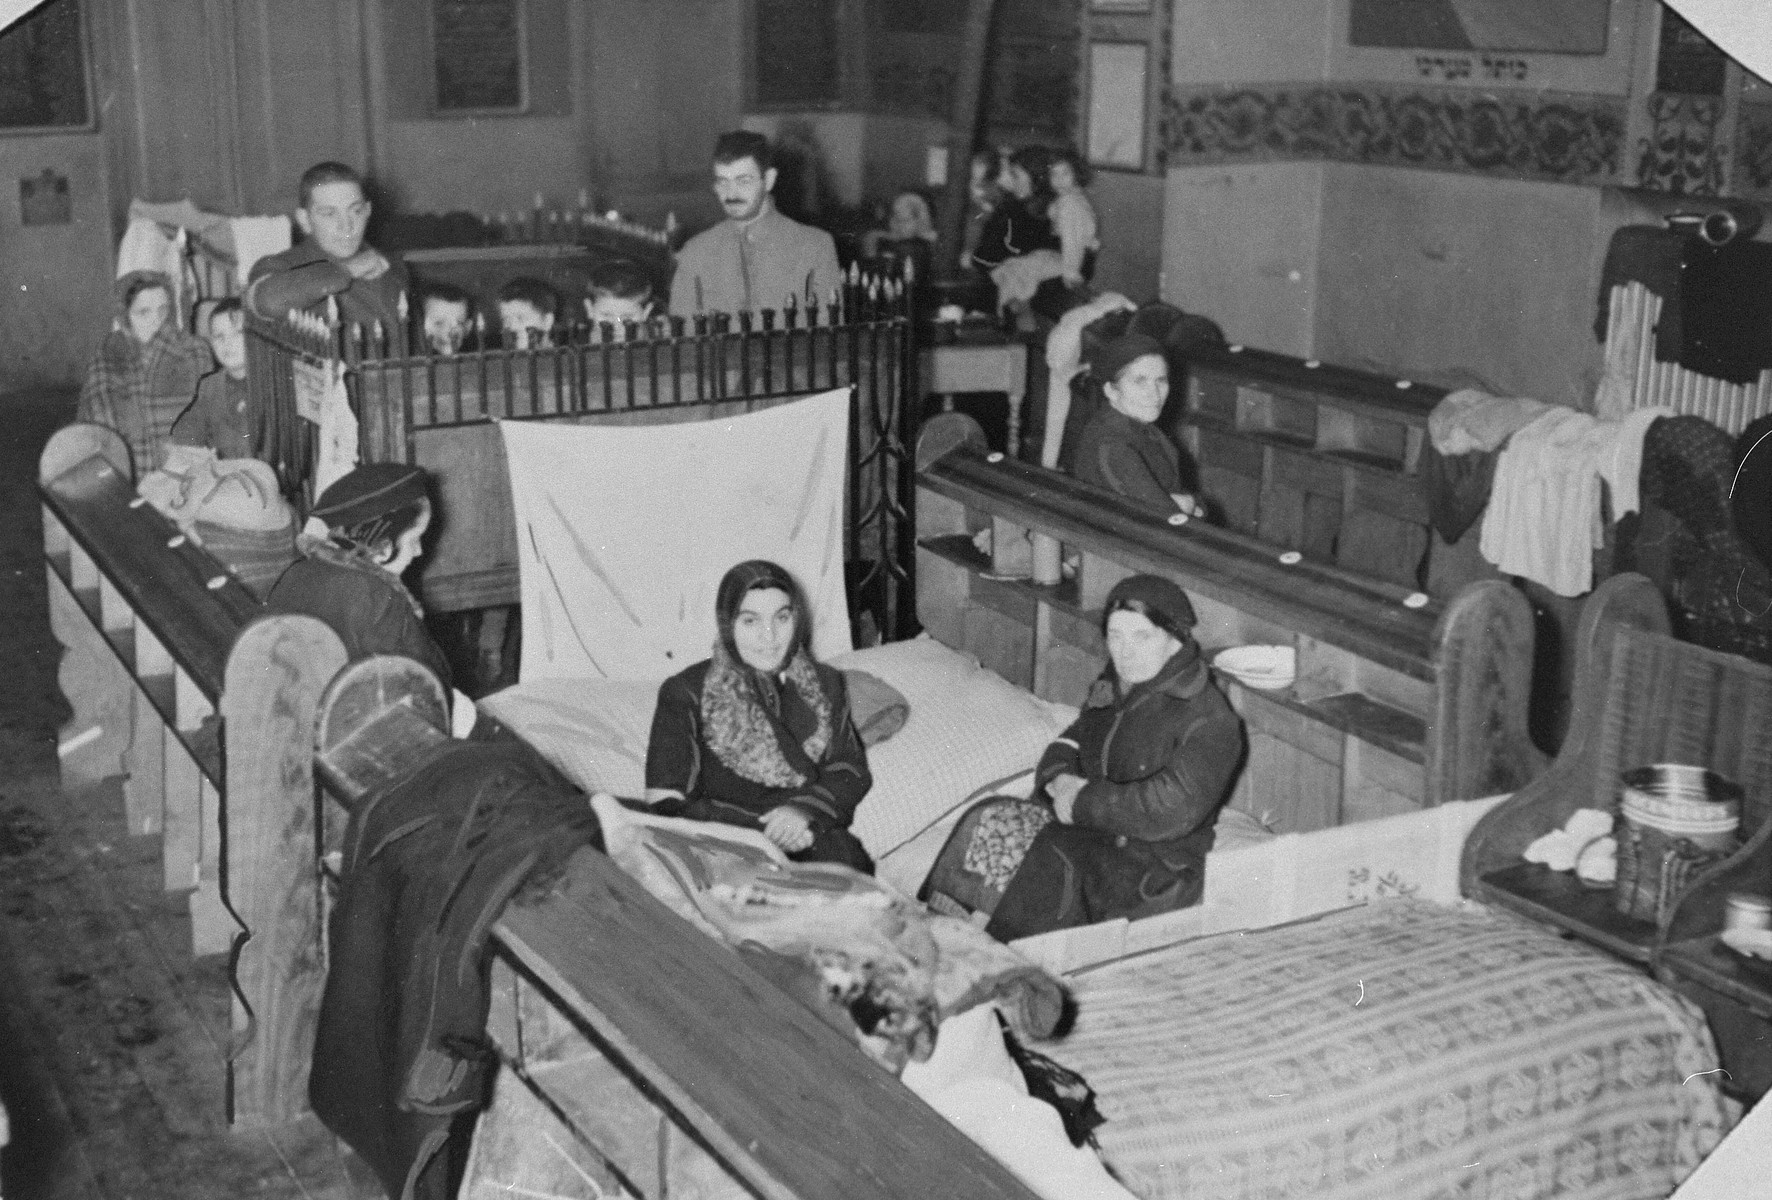 A synagogue has been converted into a temporary shelter to house Jewish families forced to move into the ghetto in Krakow-Podgorze.